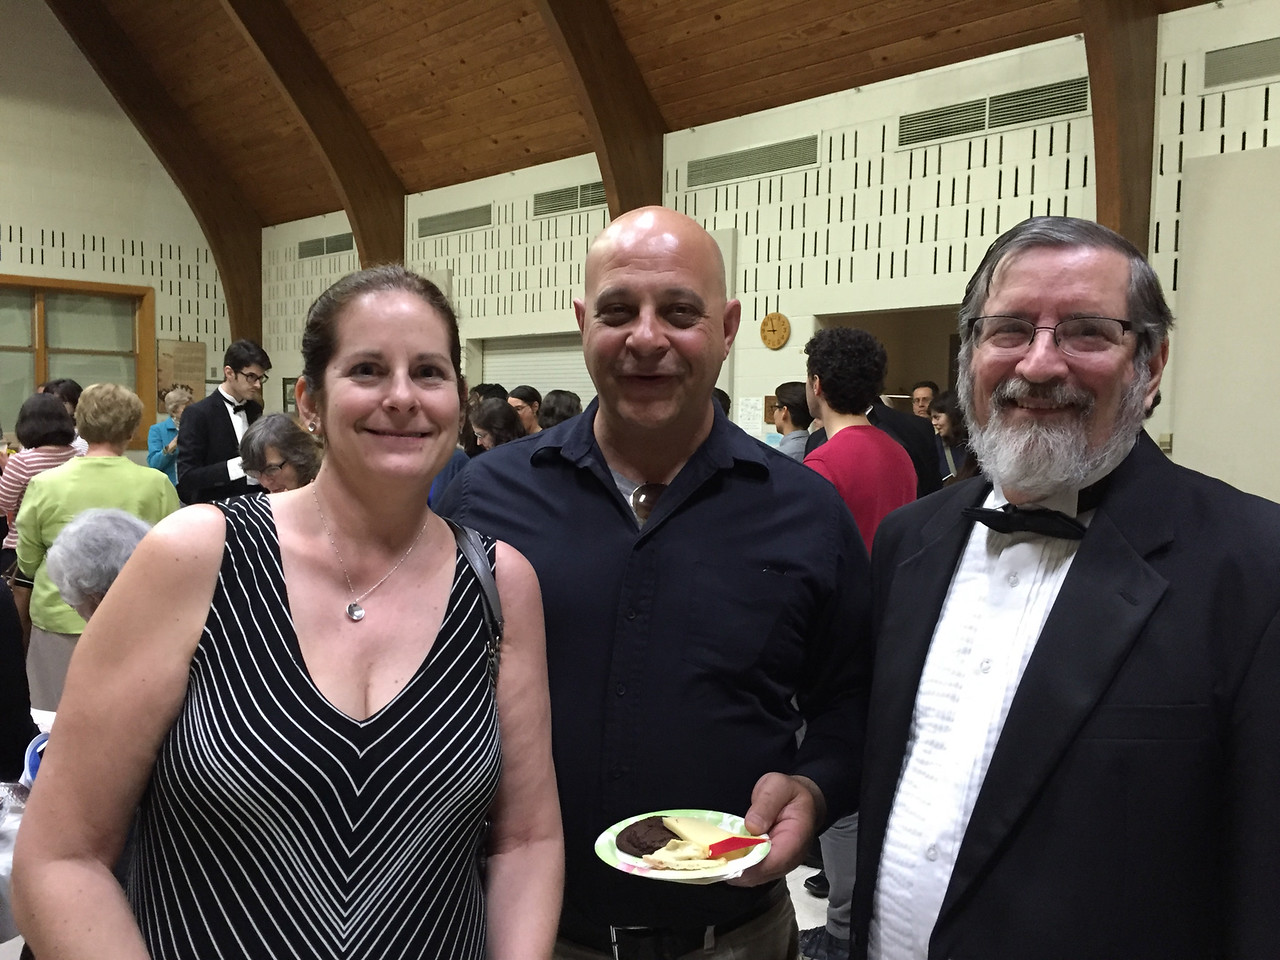 Alison and Mike, her fiance, came down for a visit & heard one of the Bloomington Chamber Singers' concerts. That was another special joy for us!